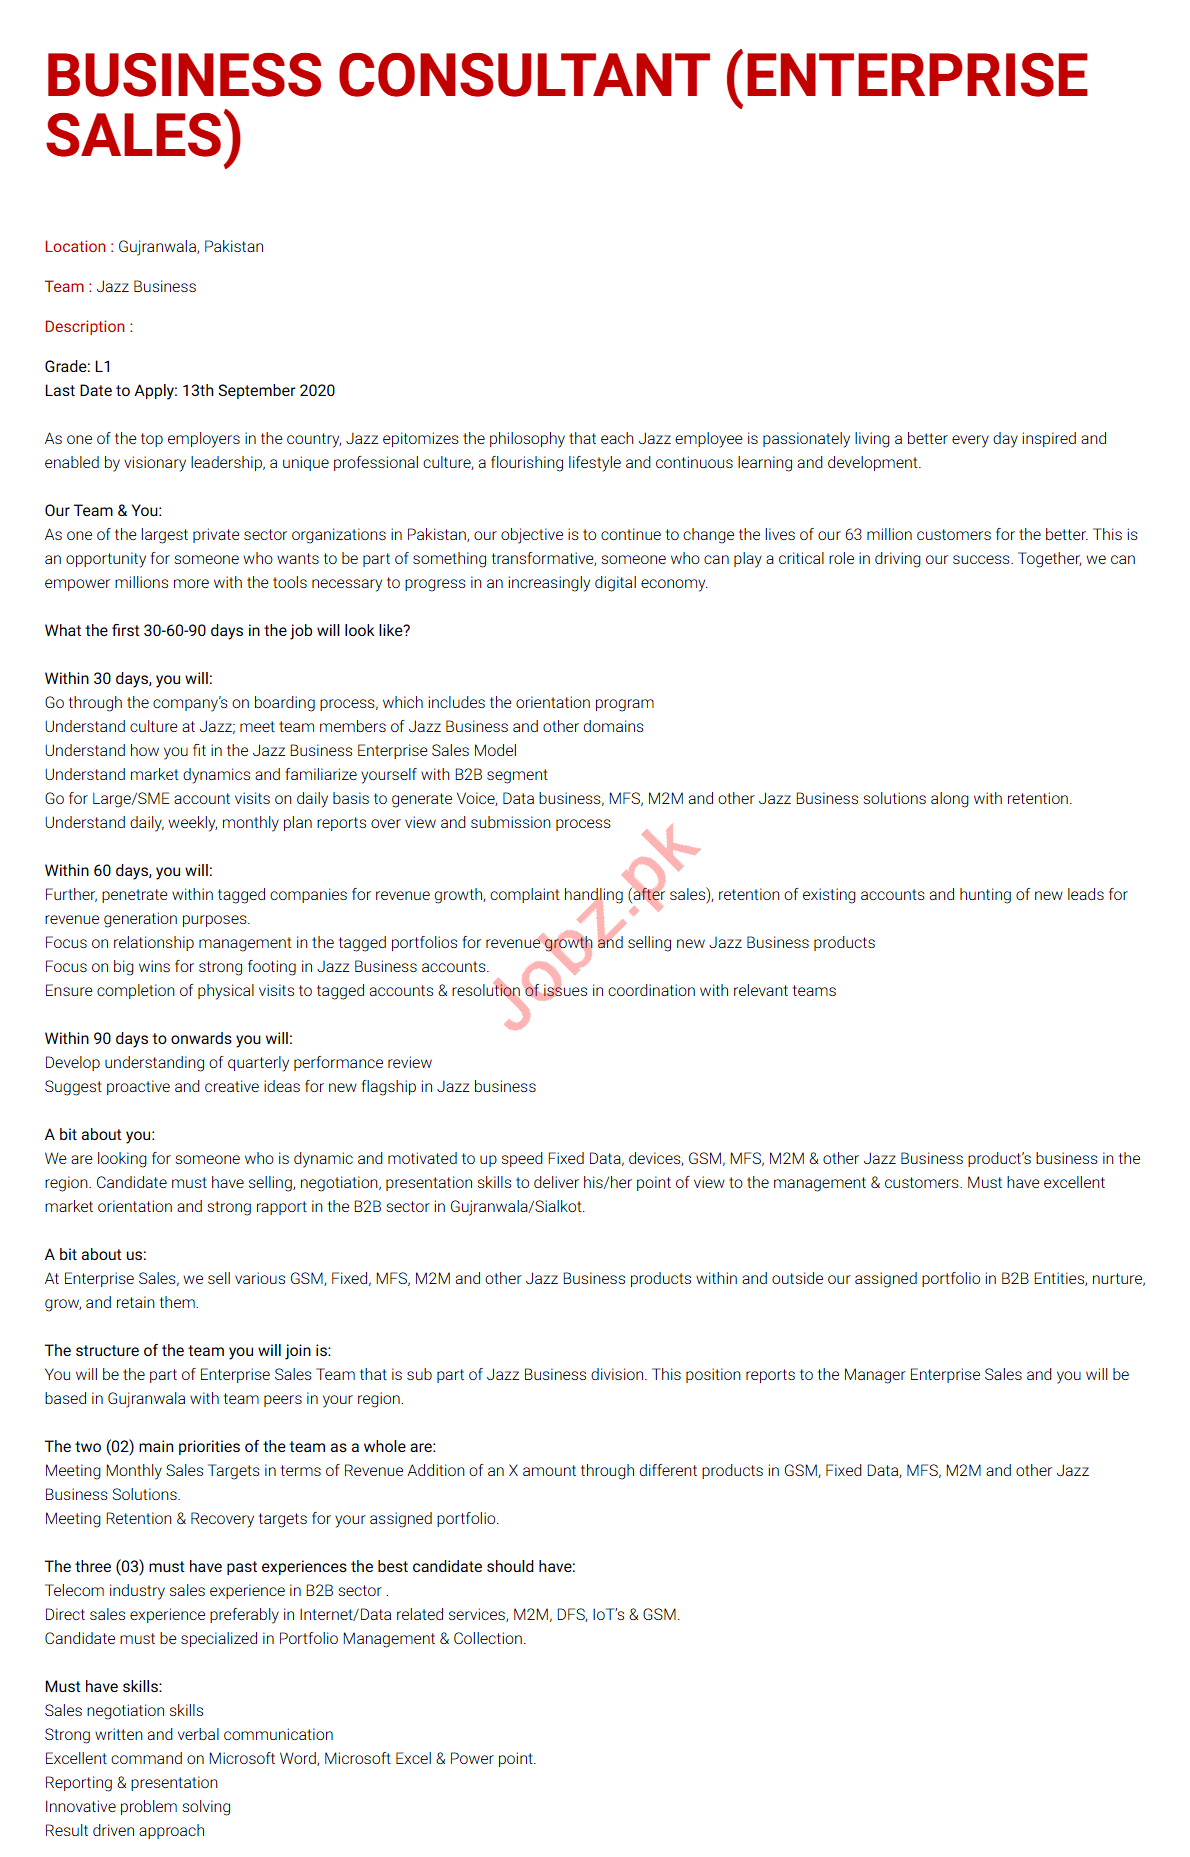 Business Consultant Jobs 2020 in Jazz Telecom Gujranwala